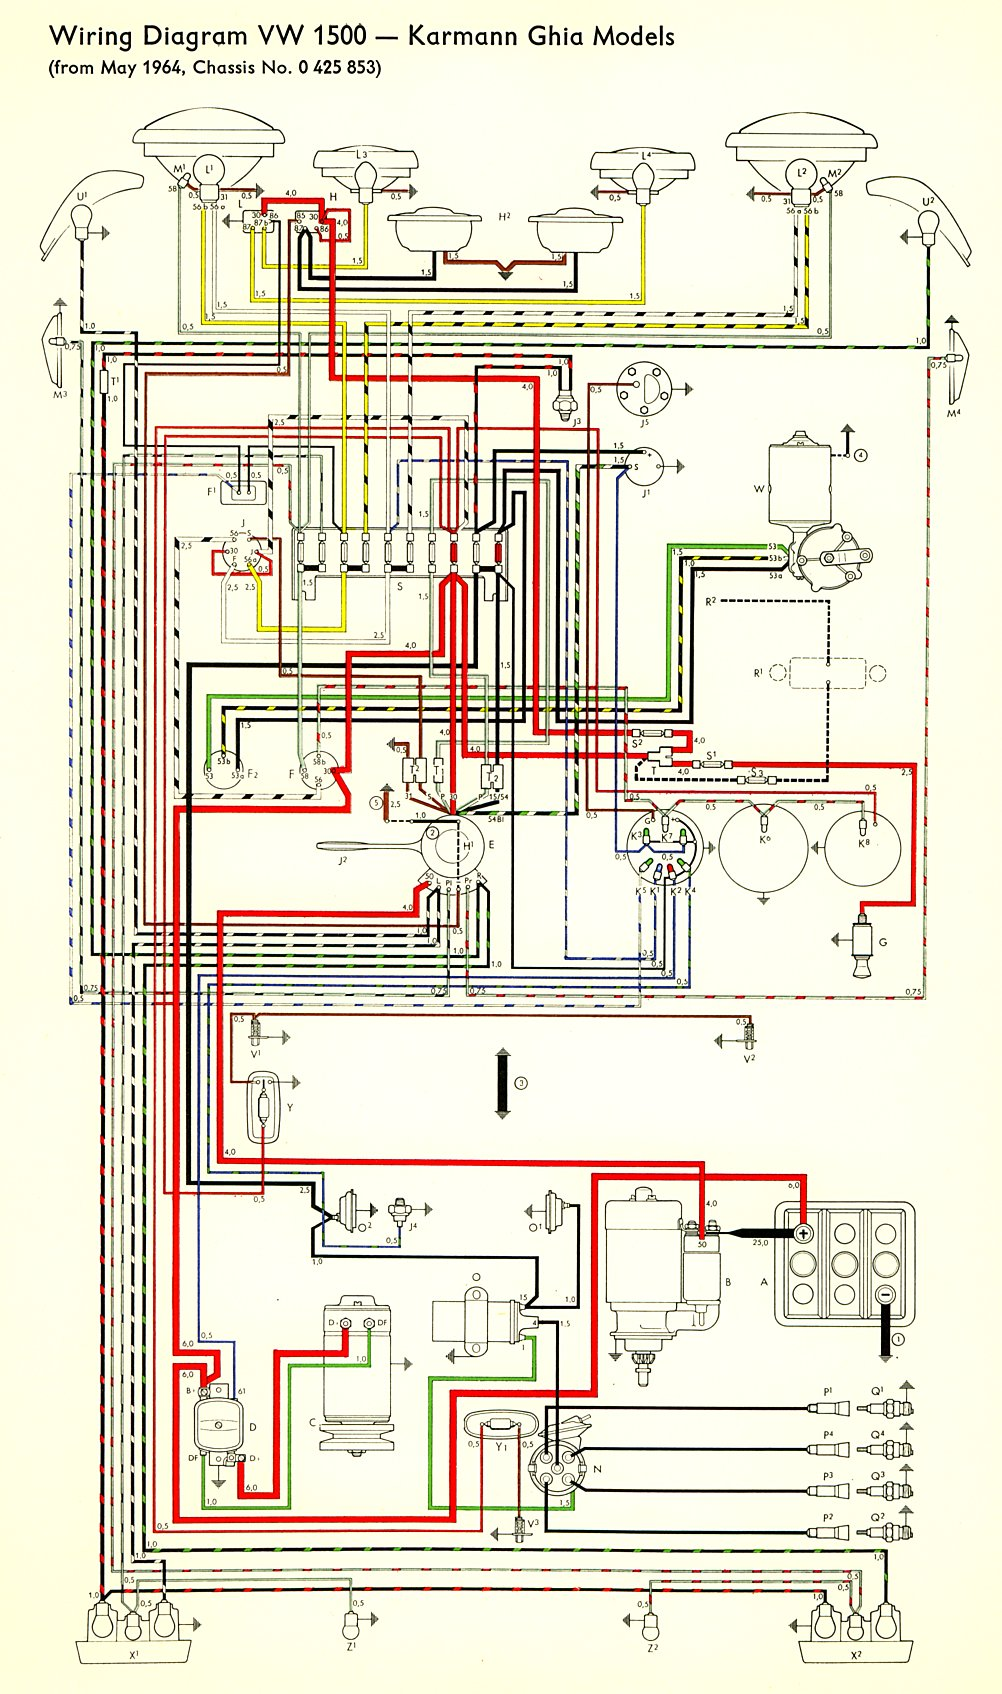 1972 Volkswagen Wiring Diagram Explore On The Net 1995 Jeep Wrangler Alternator Karmann Ghia 32 Vw Beetle